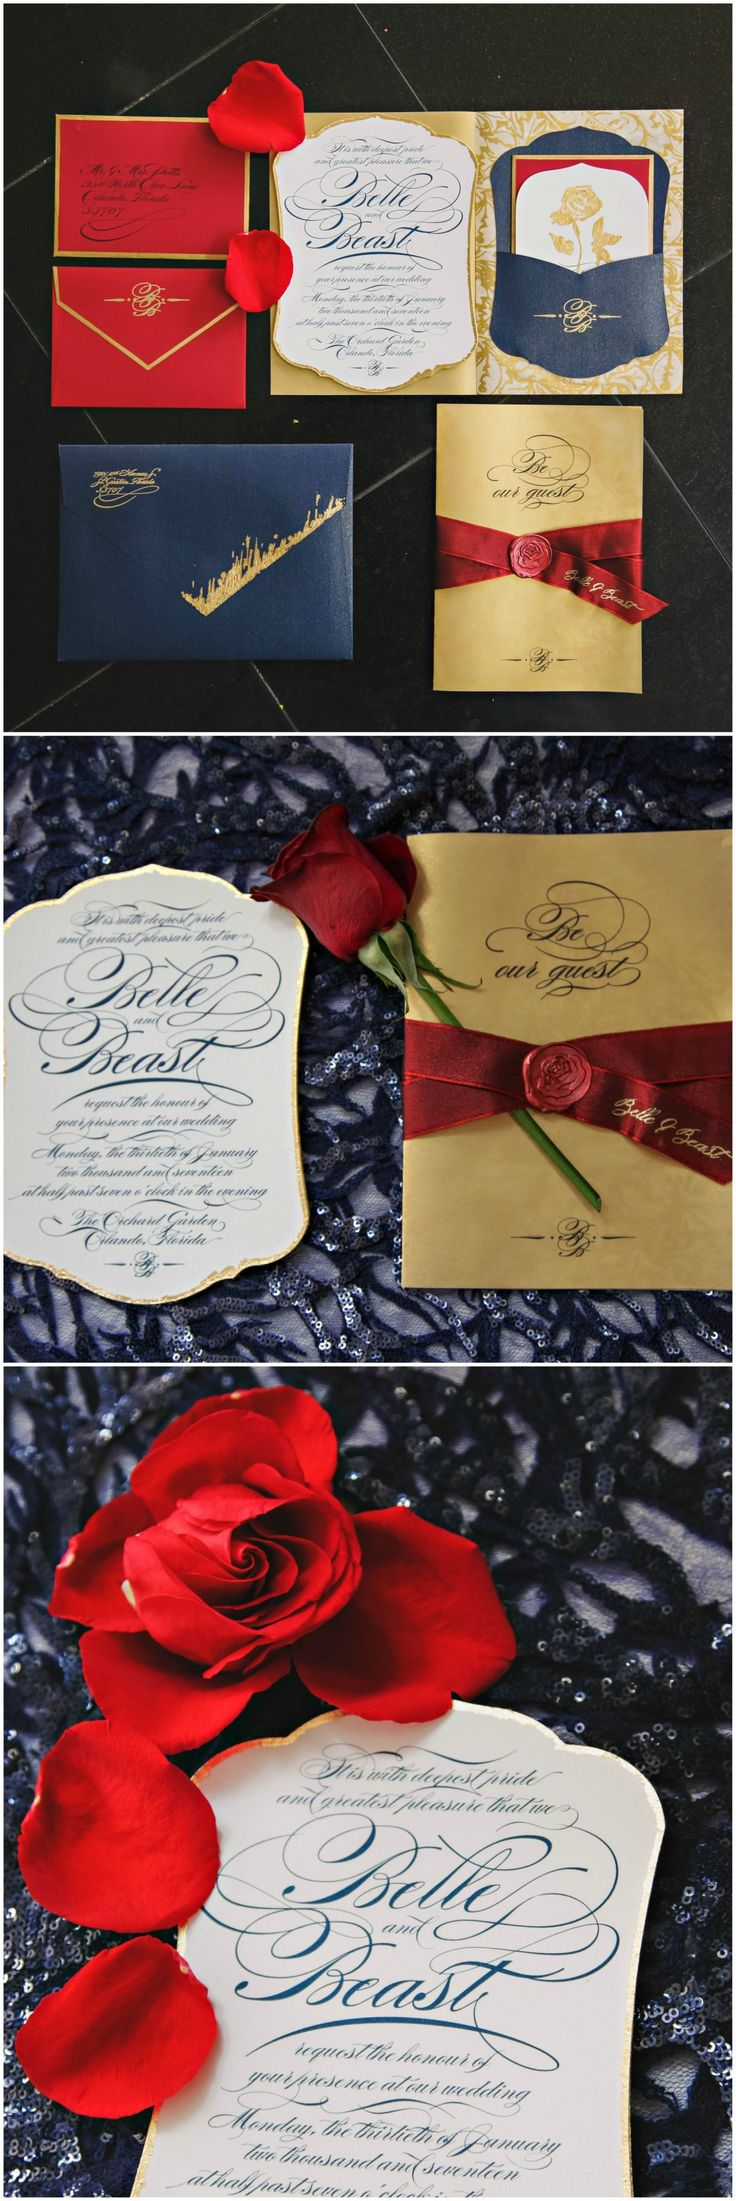 405 best Disney Wedding Ideas images on Pinterest | Beauty and the ...